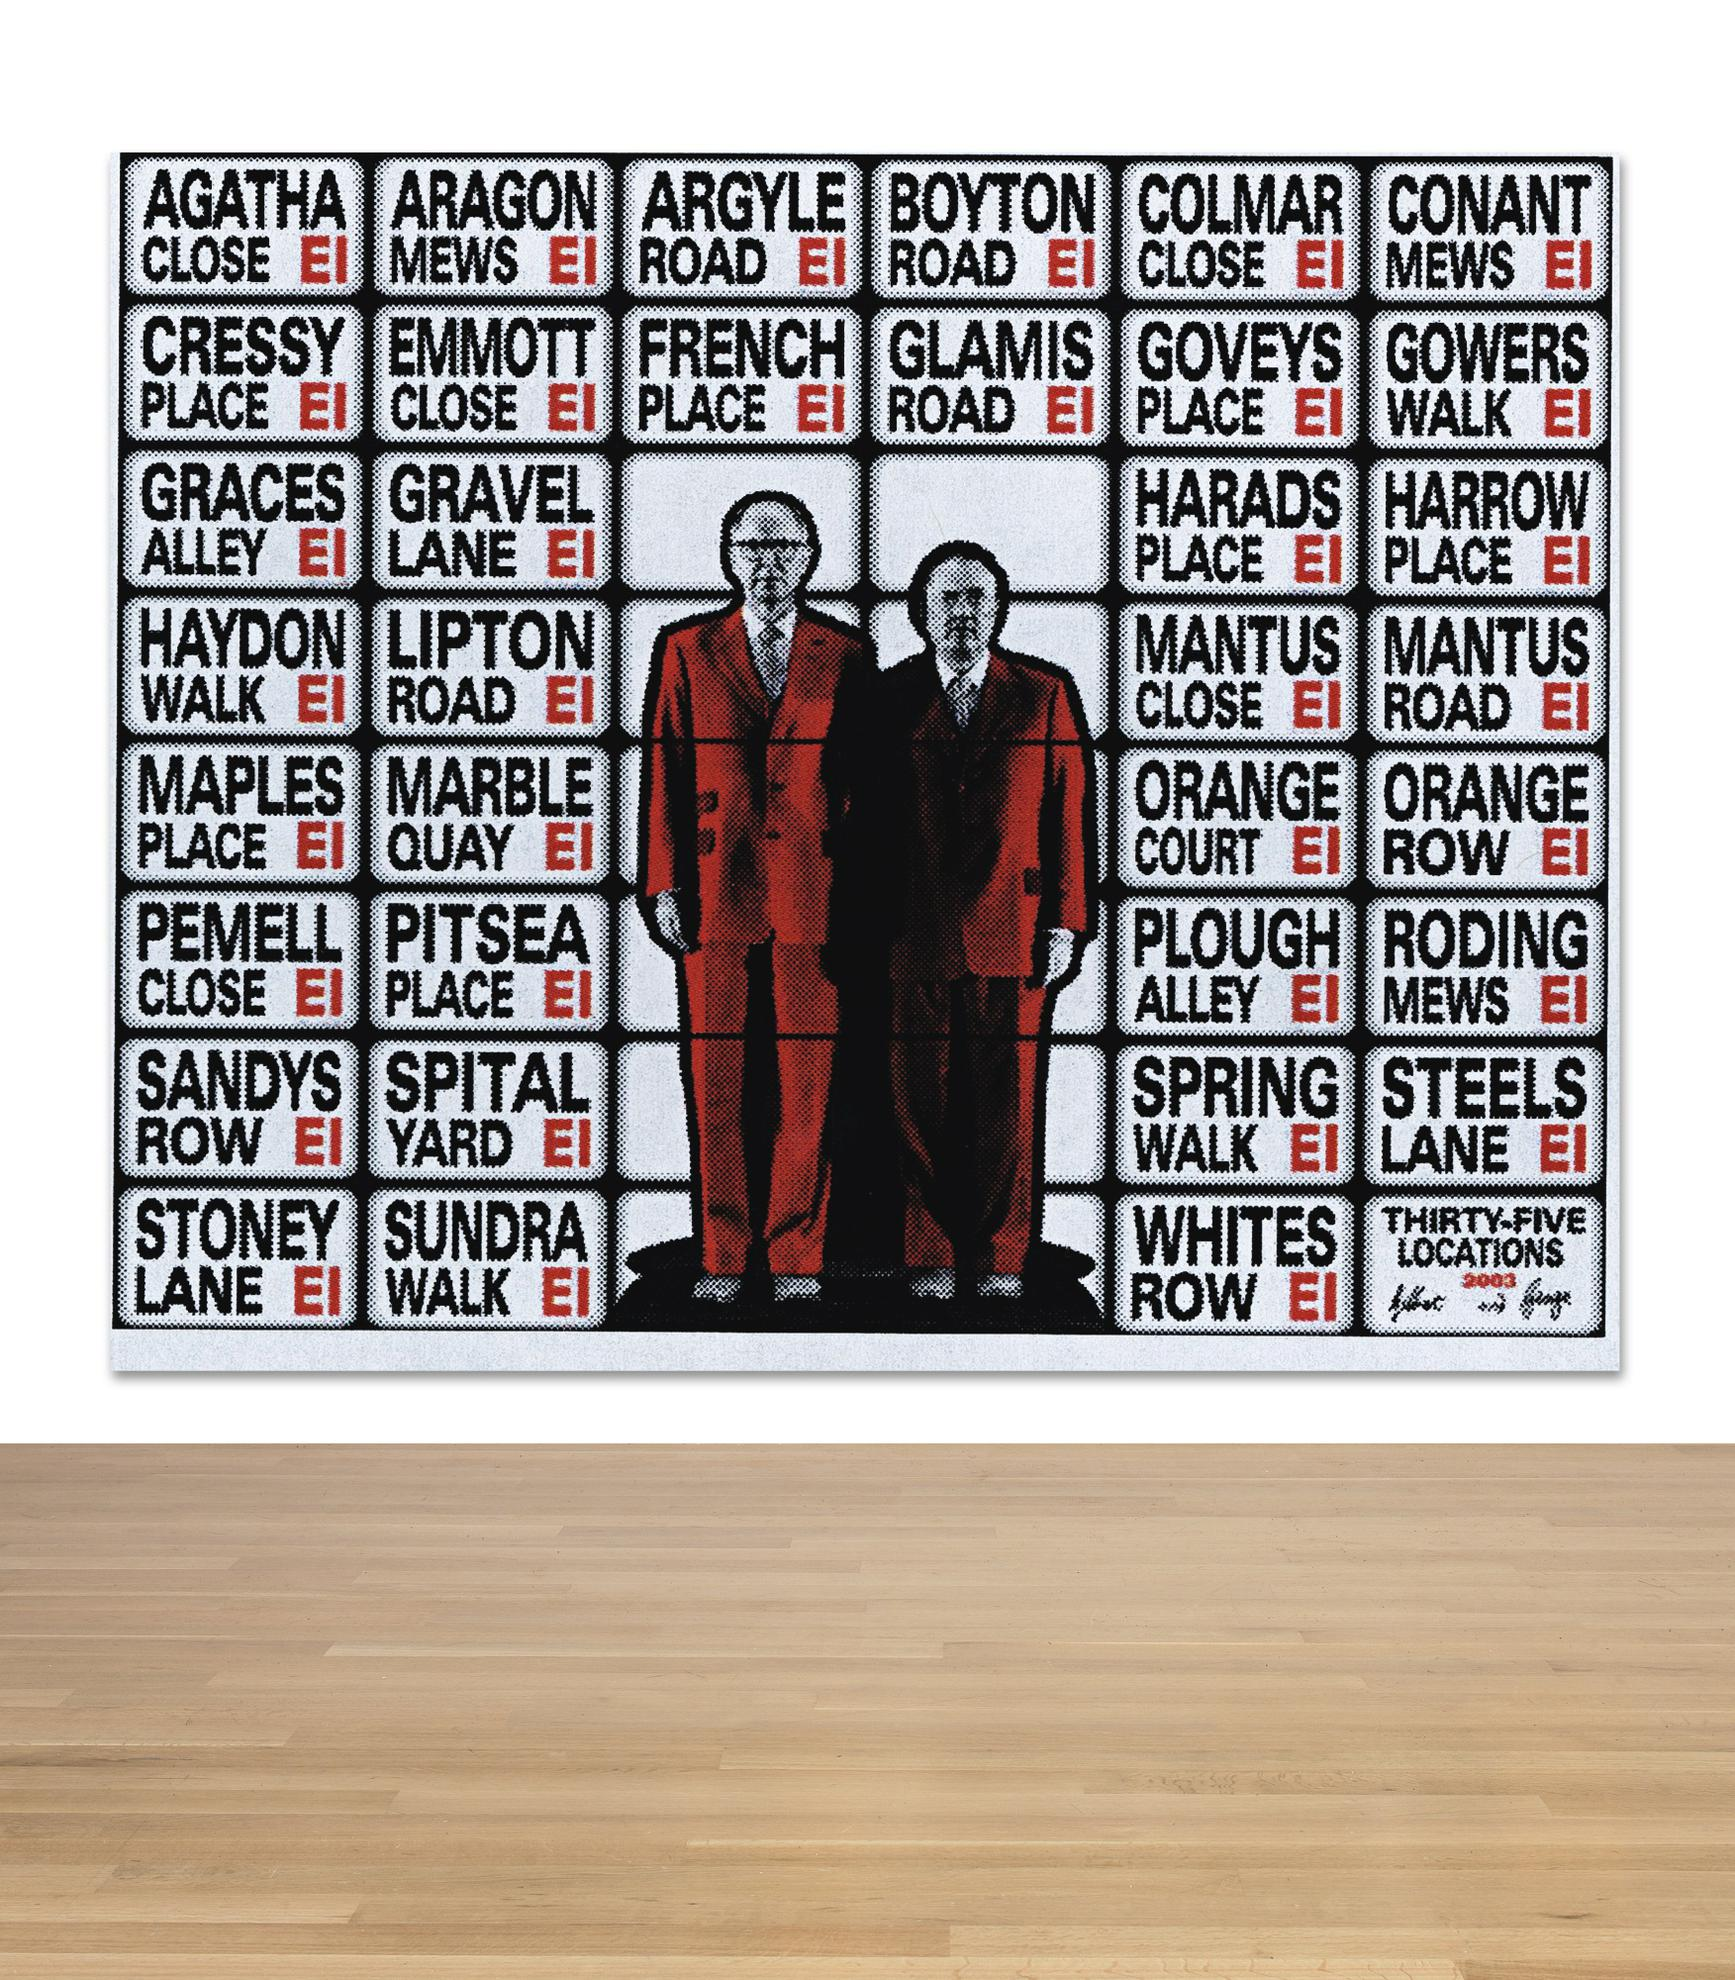 Gilbert and George-Thirty-Five Locations-2003